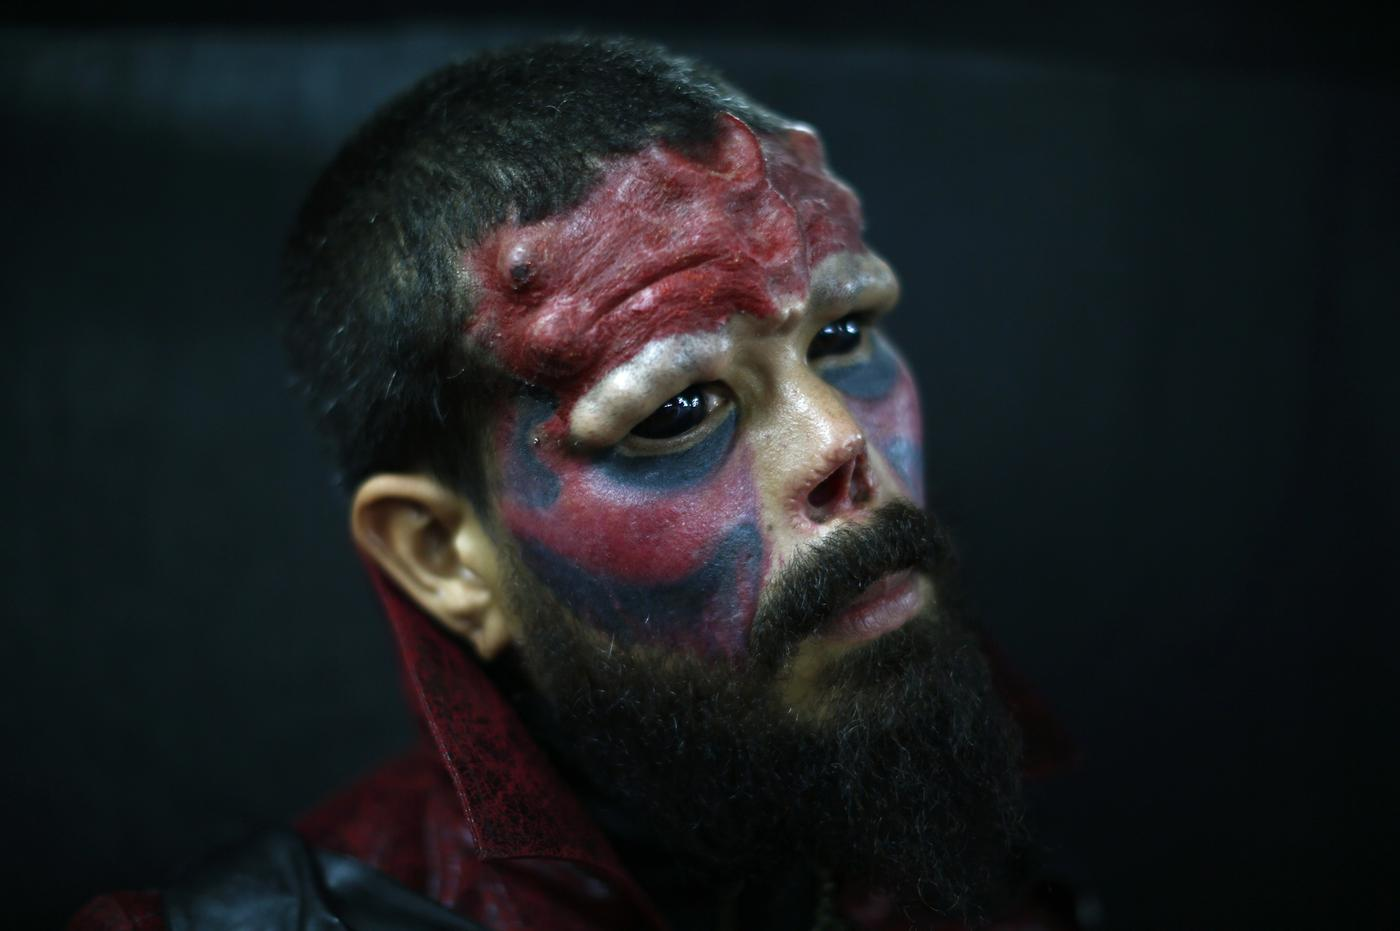 Man has nose cut off to look like comic book's Captain America super villain Red Skull